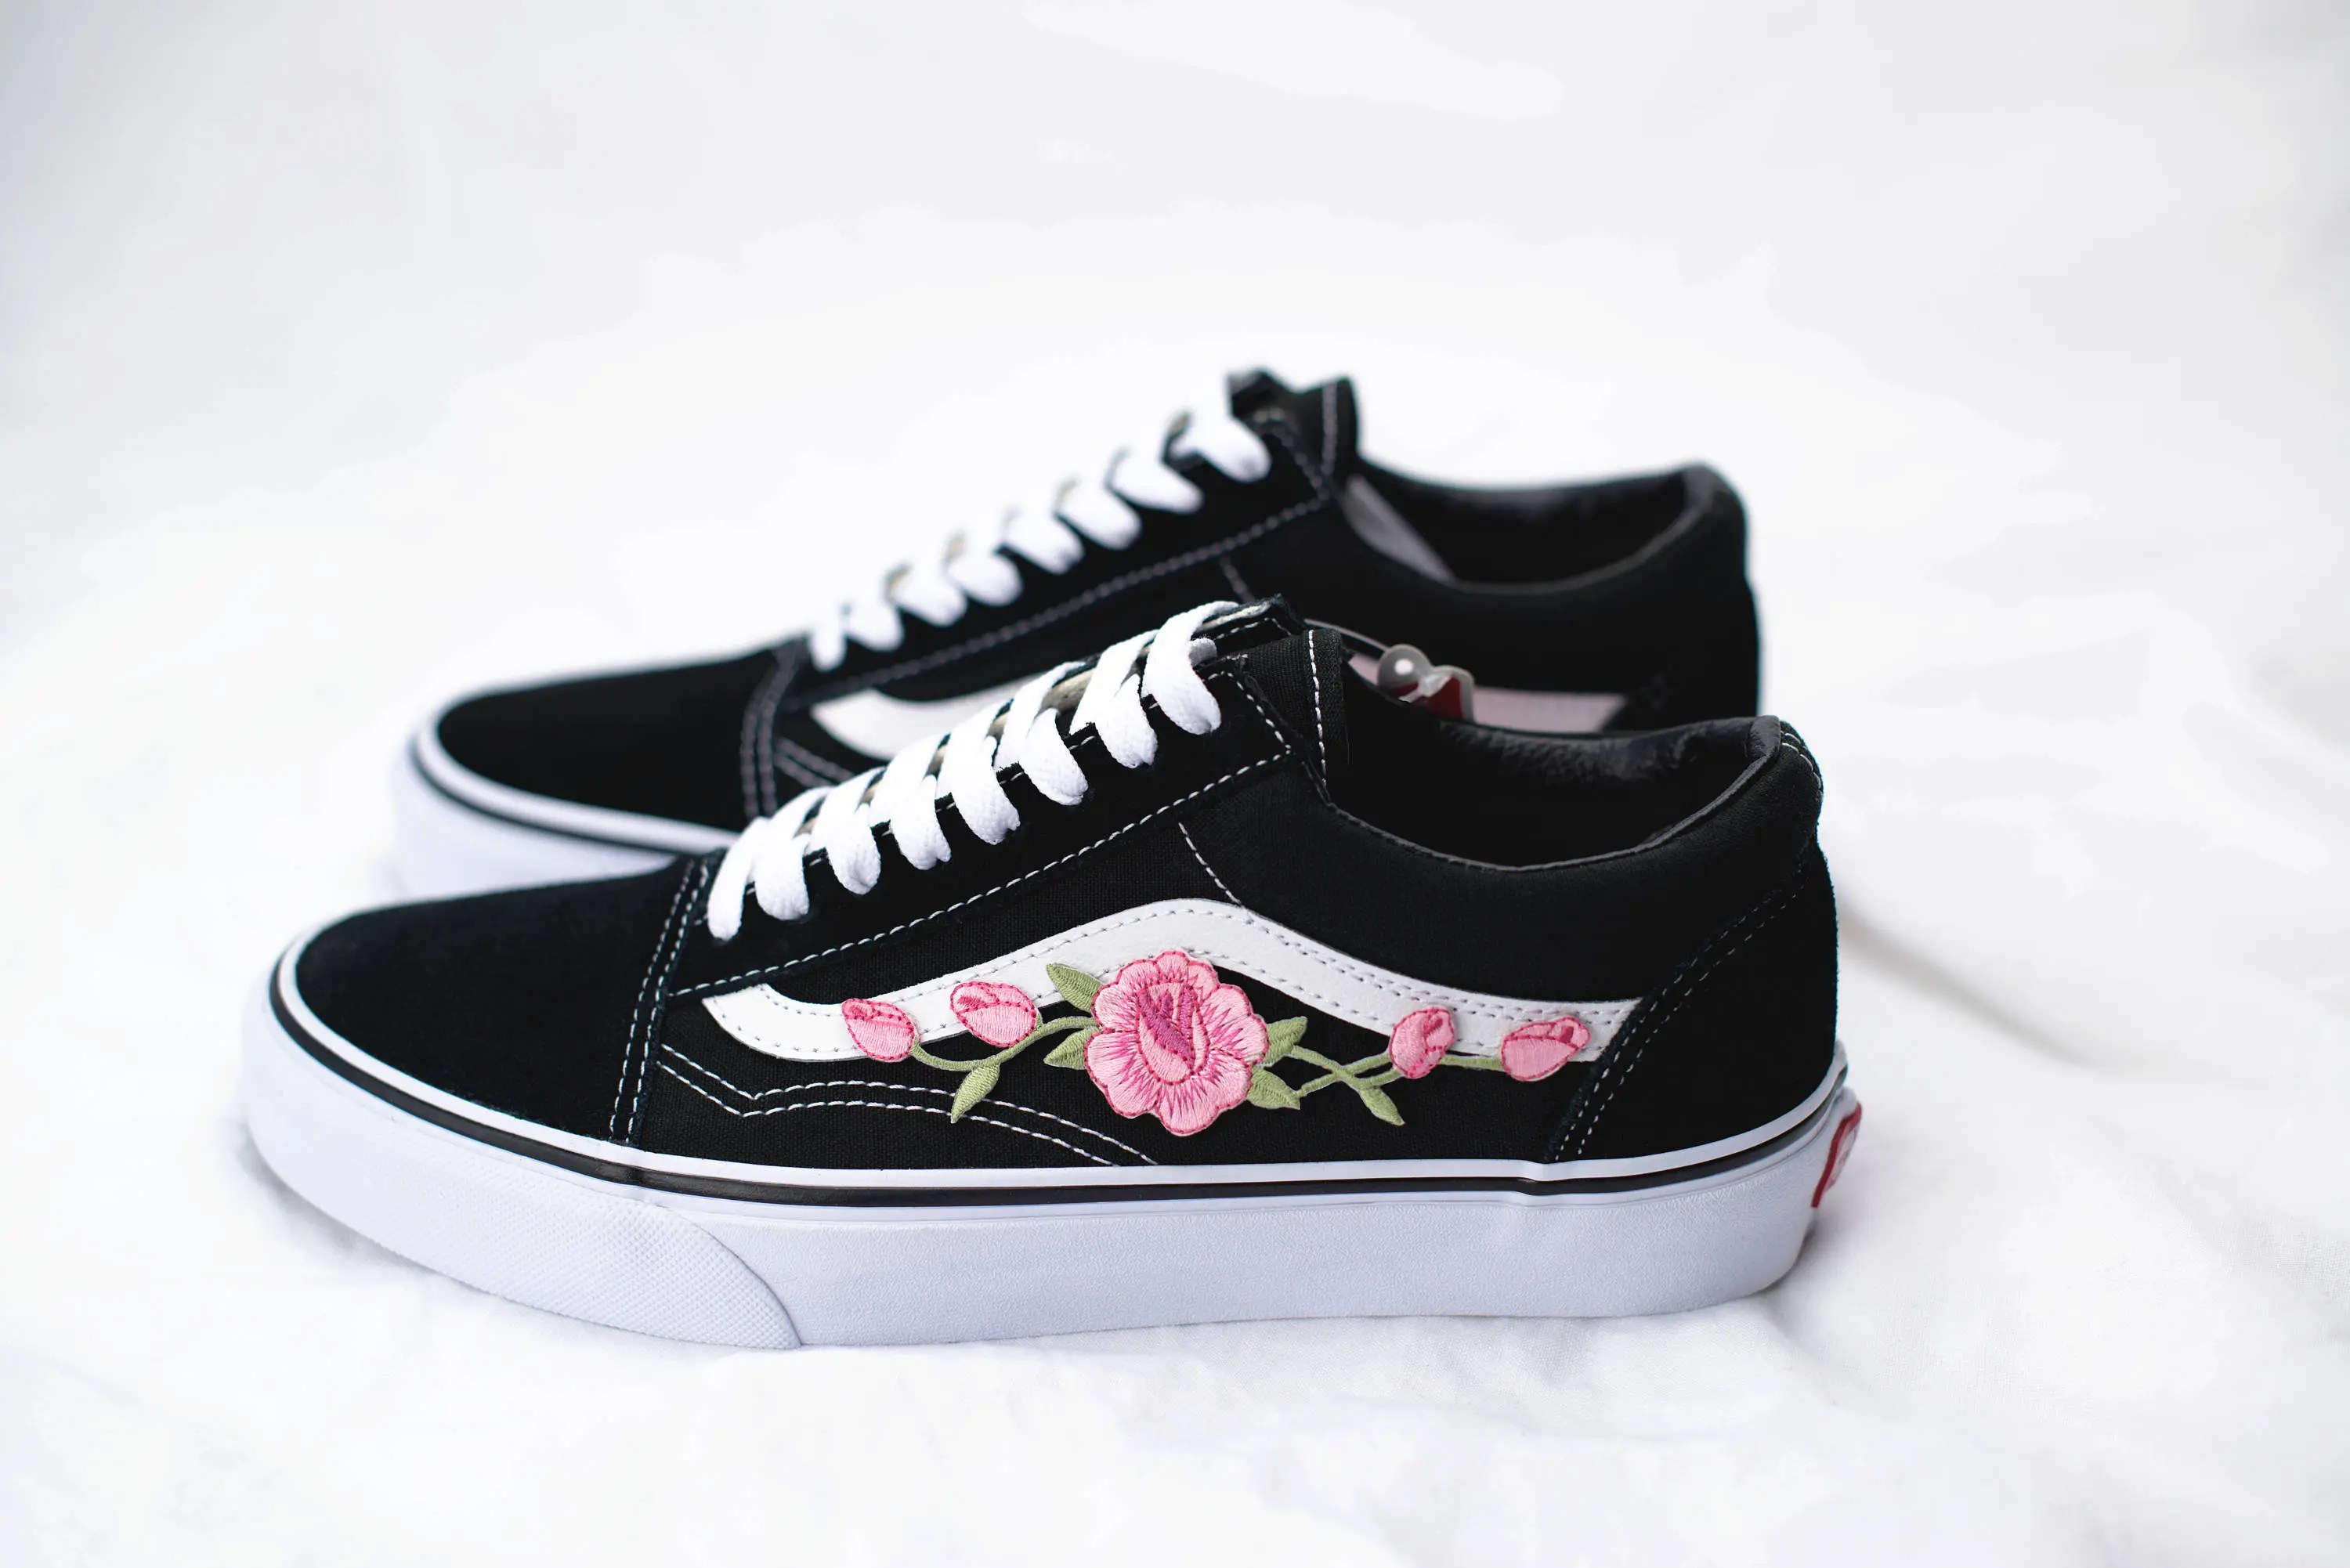 Vans Old Skool Custom  Rose Patch  EUR 34 5 47   Etsy image